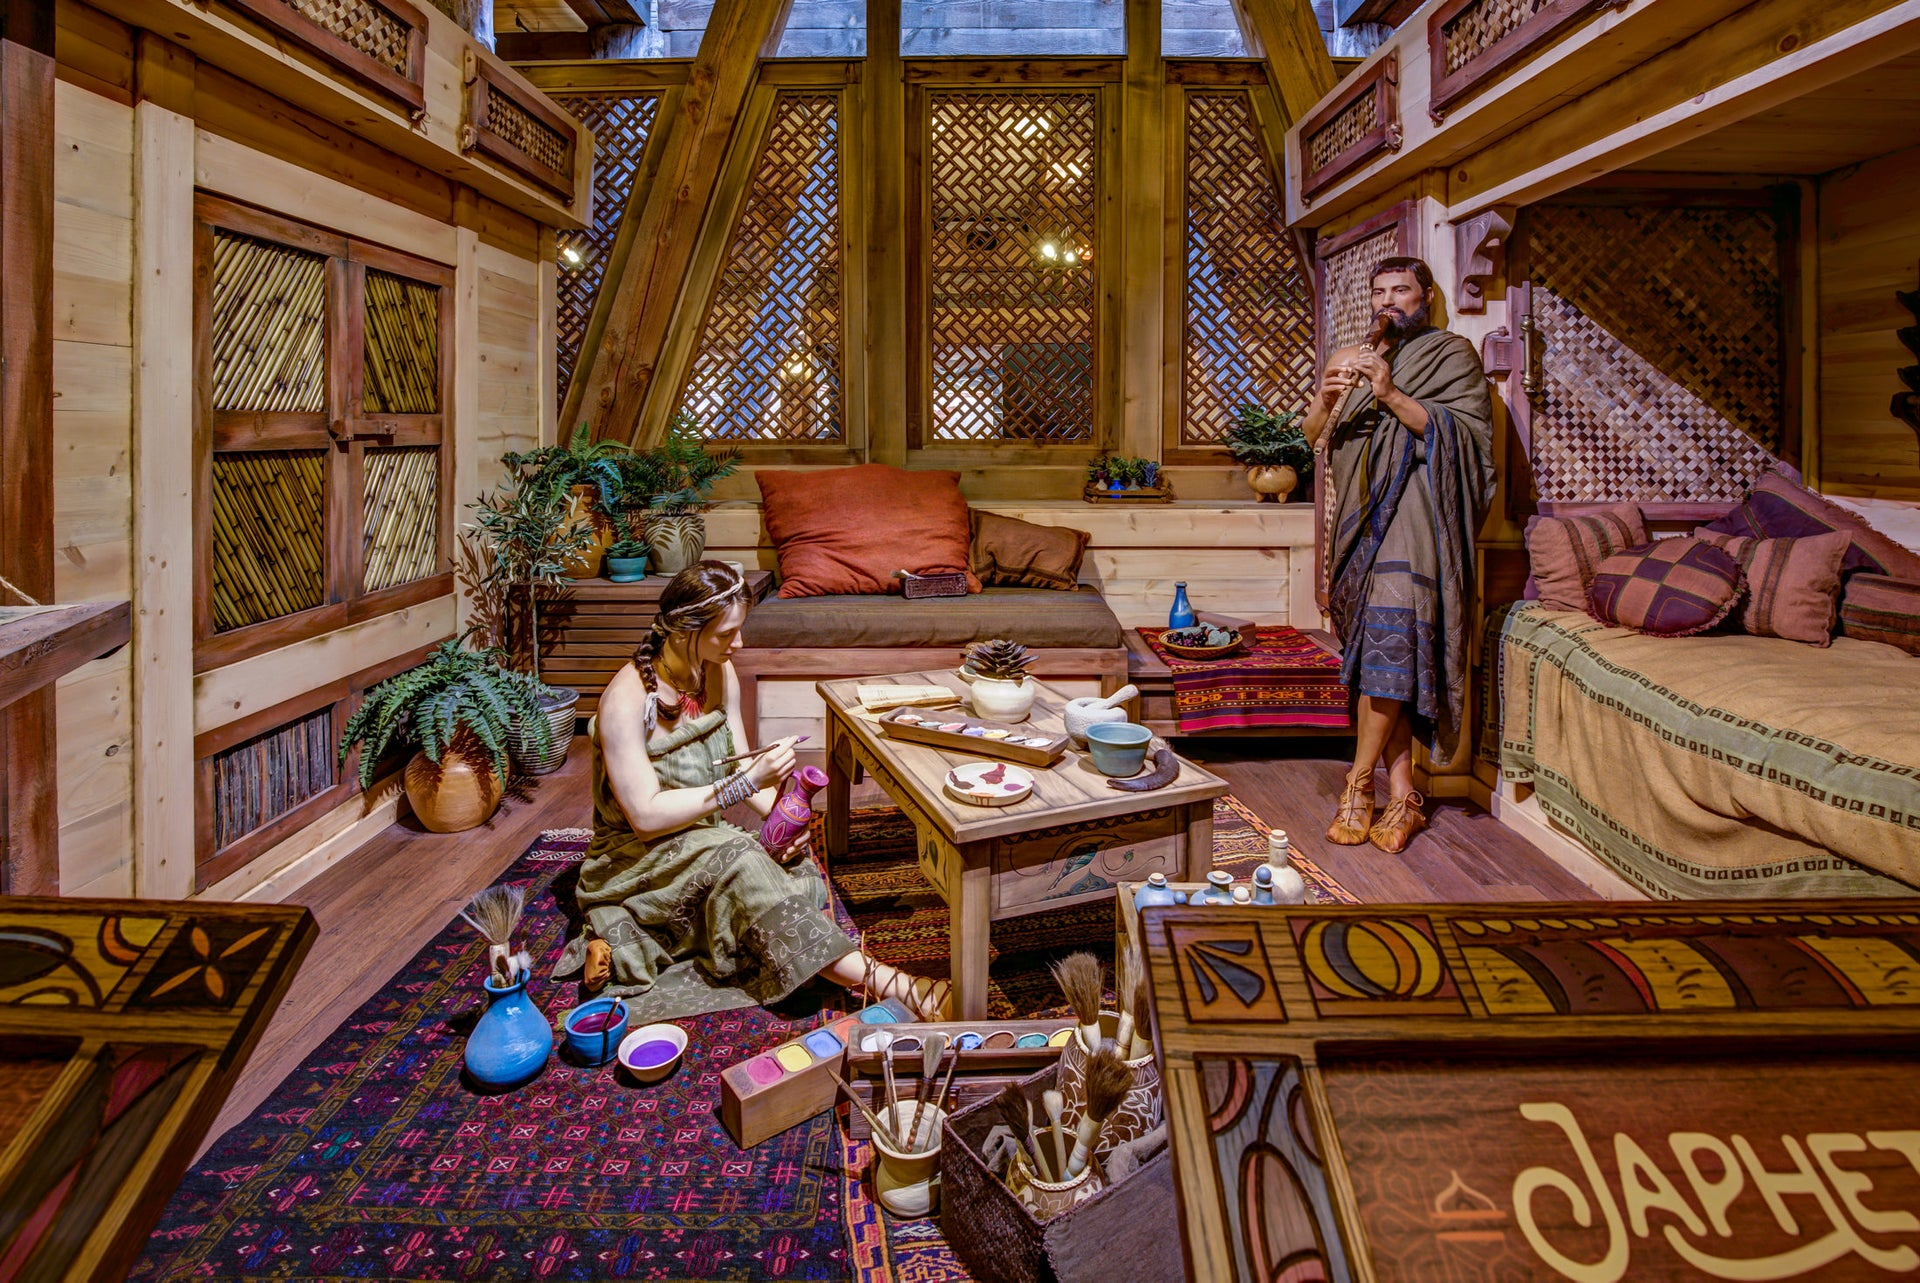 Models of Noah and a family member inside the seven-story Ark.